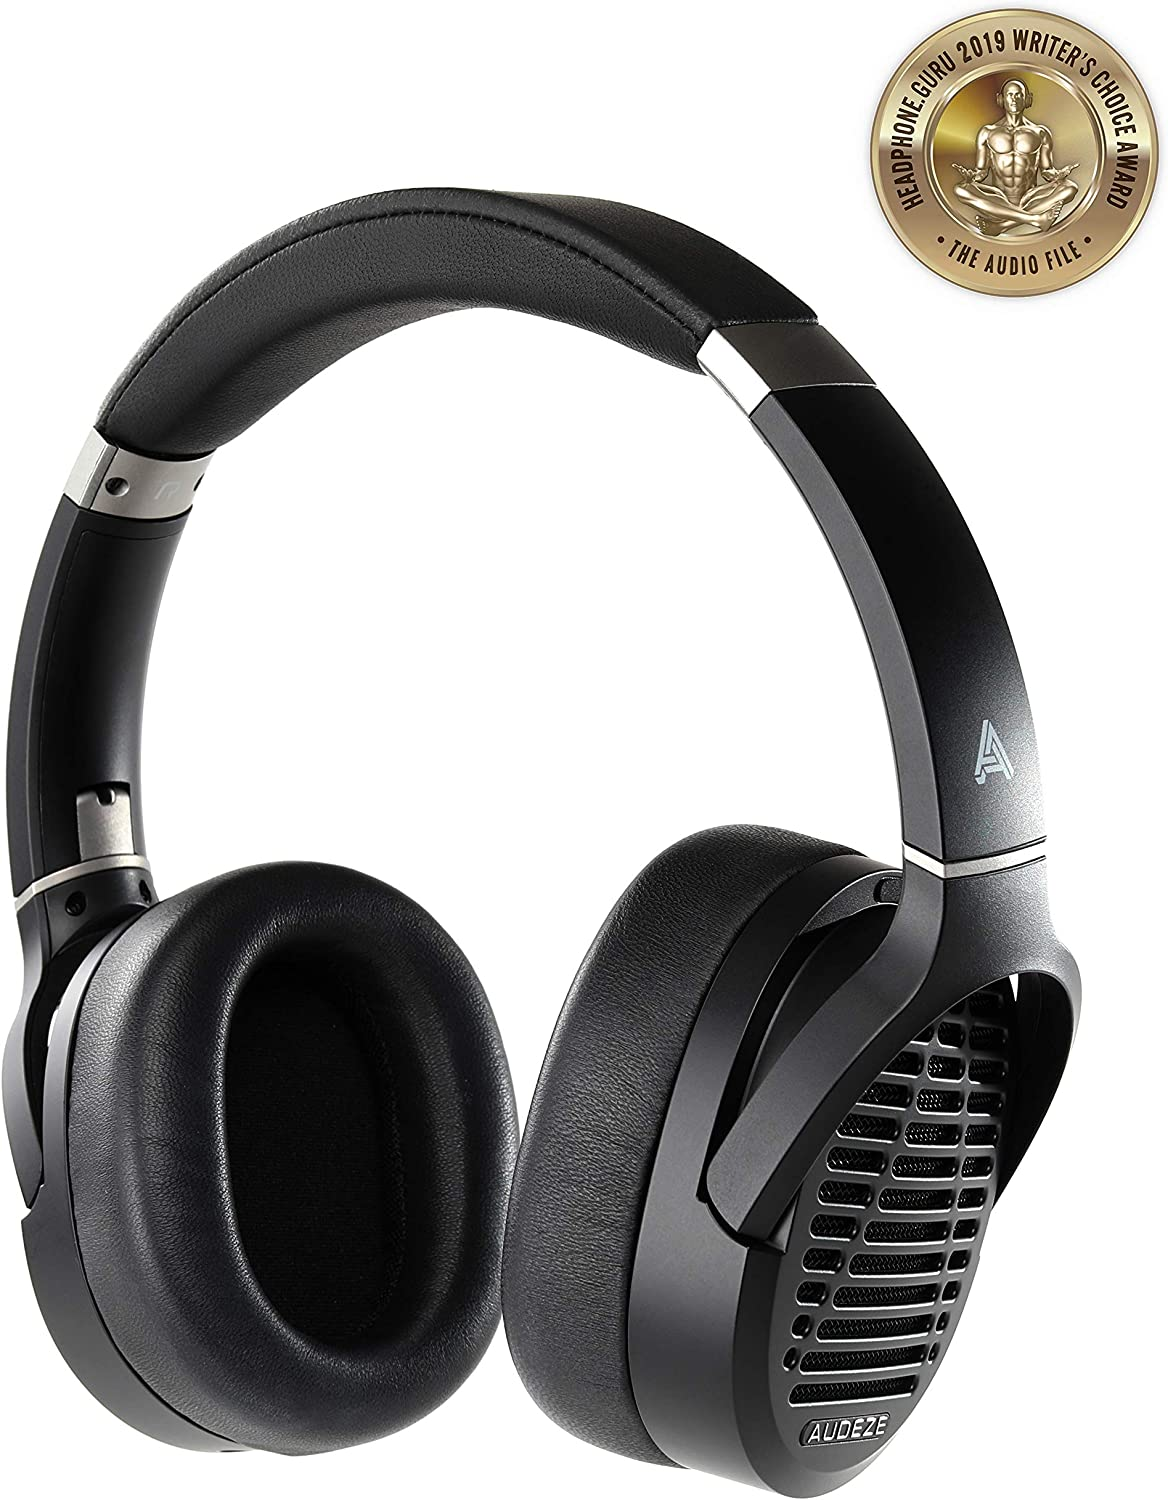 Audeze LCD-1 Audiophile Headphones This is one of the best noise cancelling headphones for the  use in noise environment's